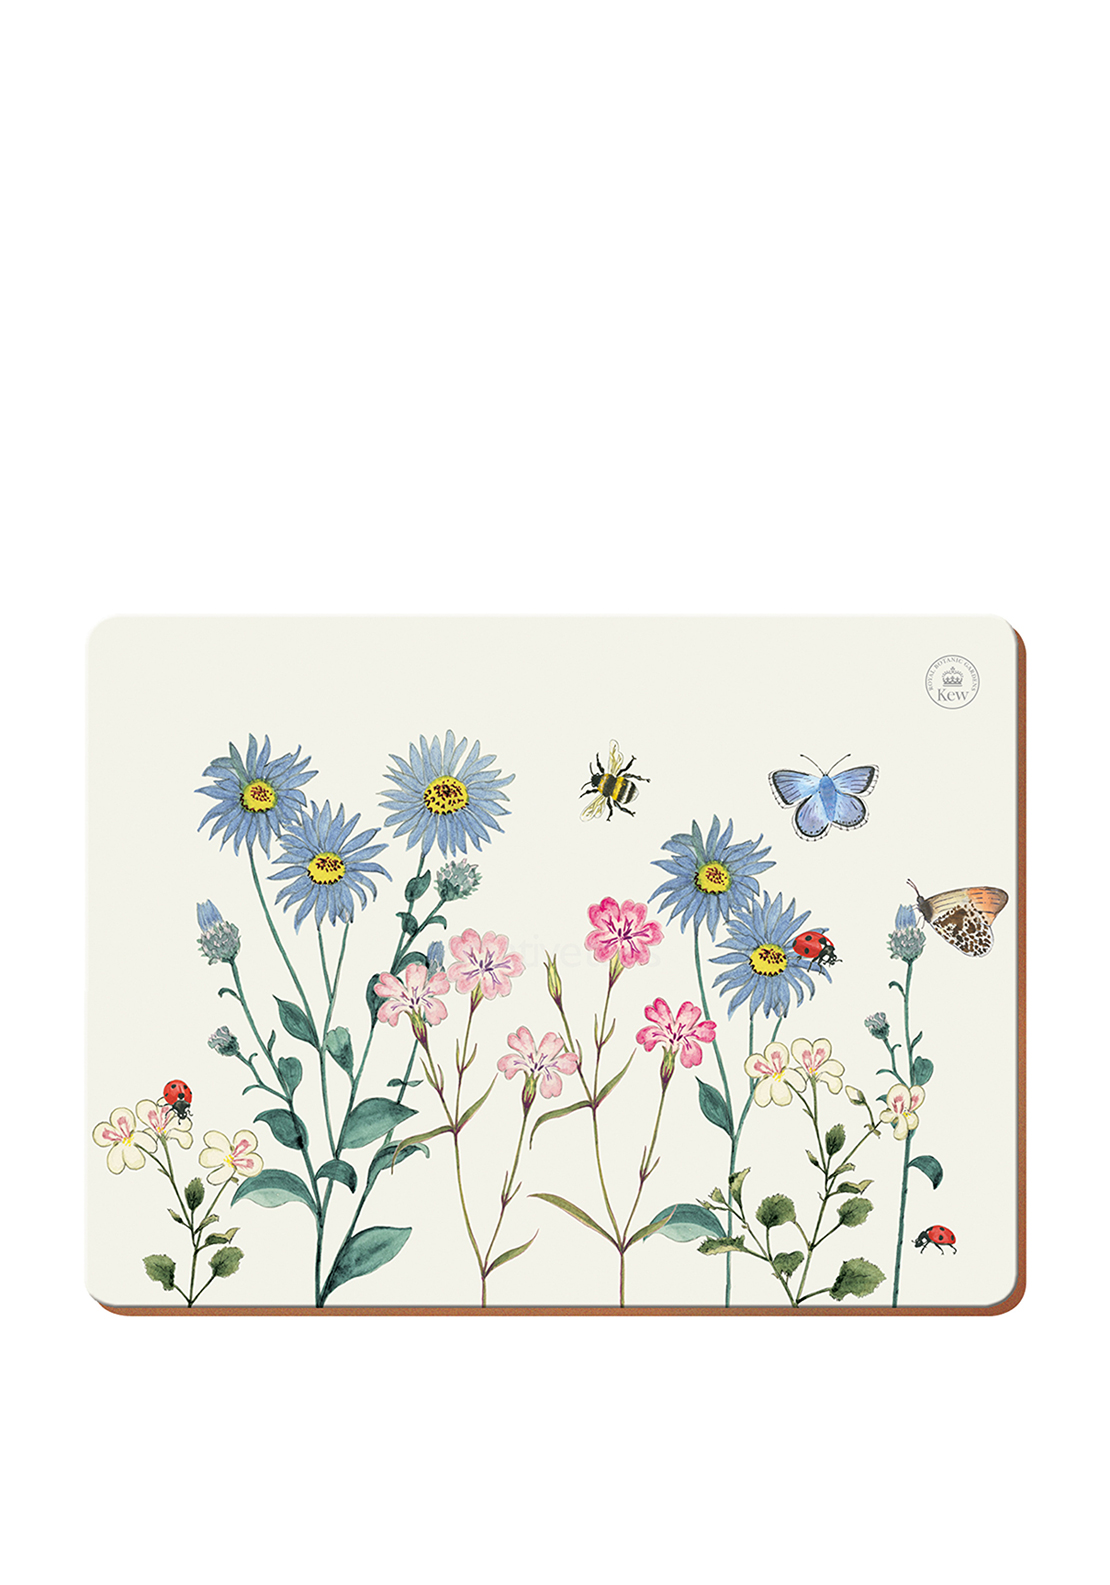 Kew Meadow Bugs Mats 6 Pack